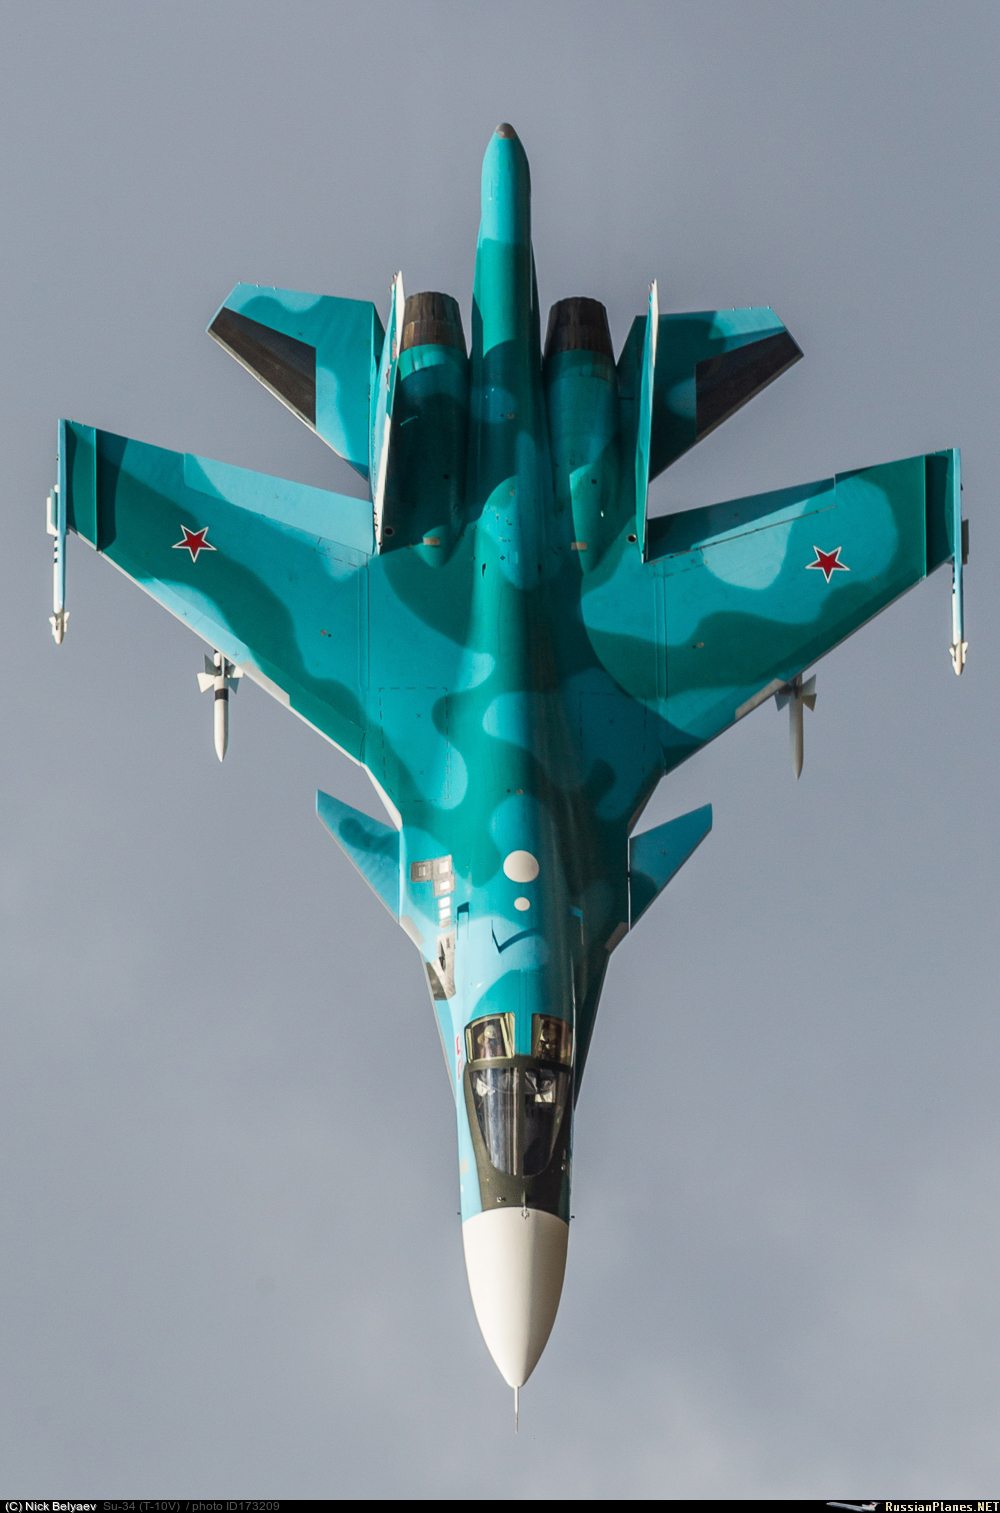 http://russianplanes.net/images/to174000/173209.jpg